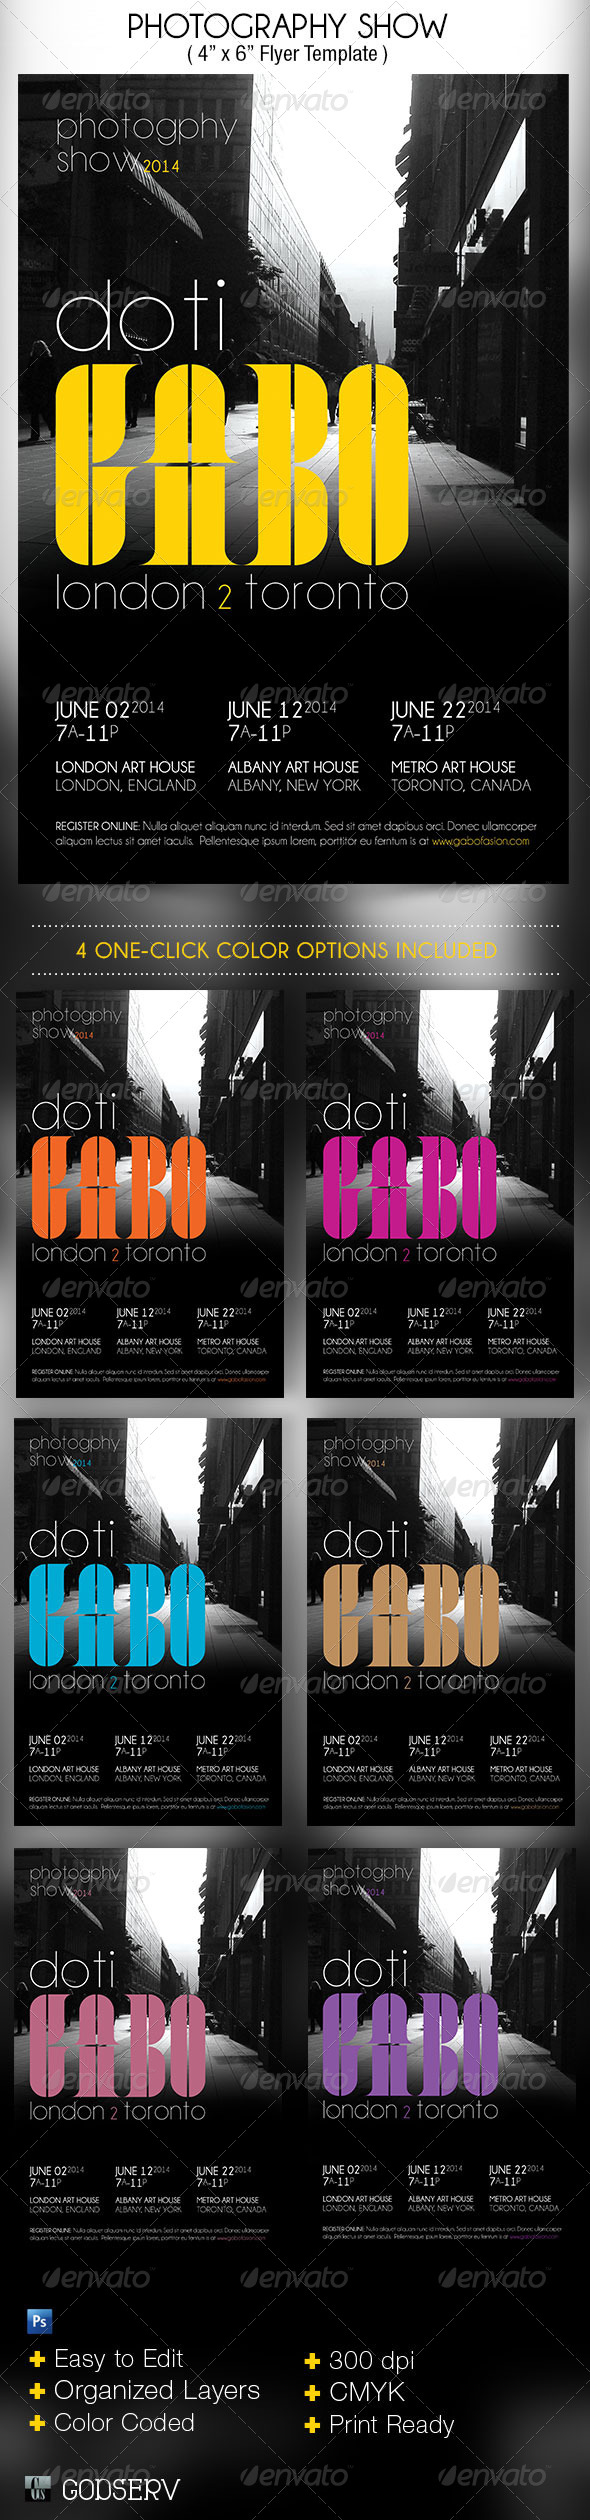 GraphicRiver Photography Show Flyer Template 4824464